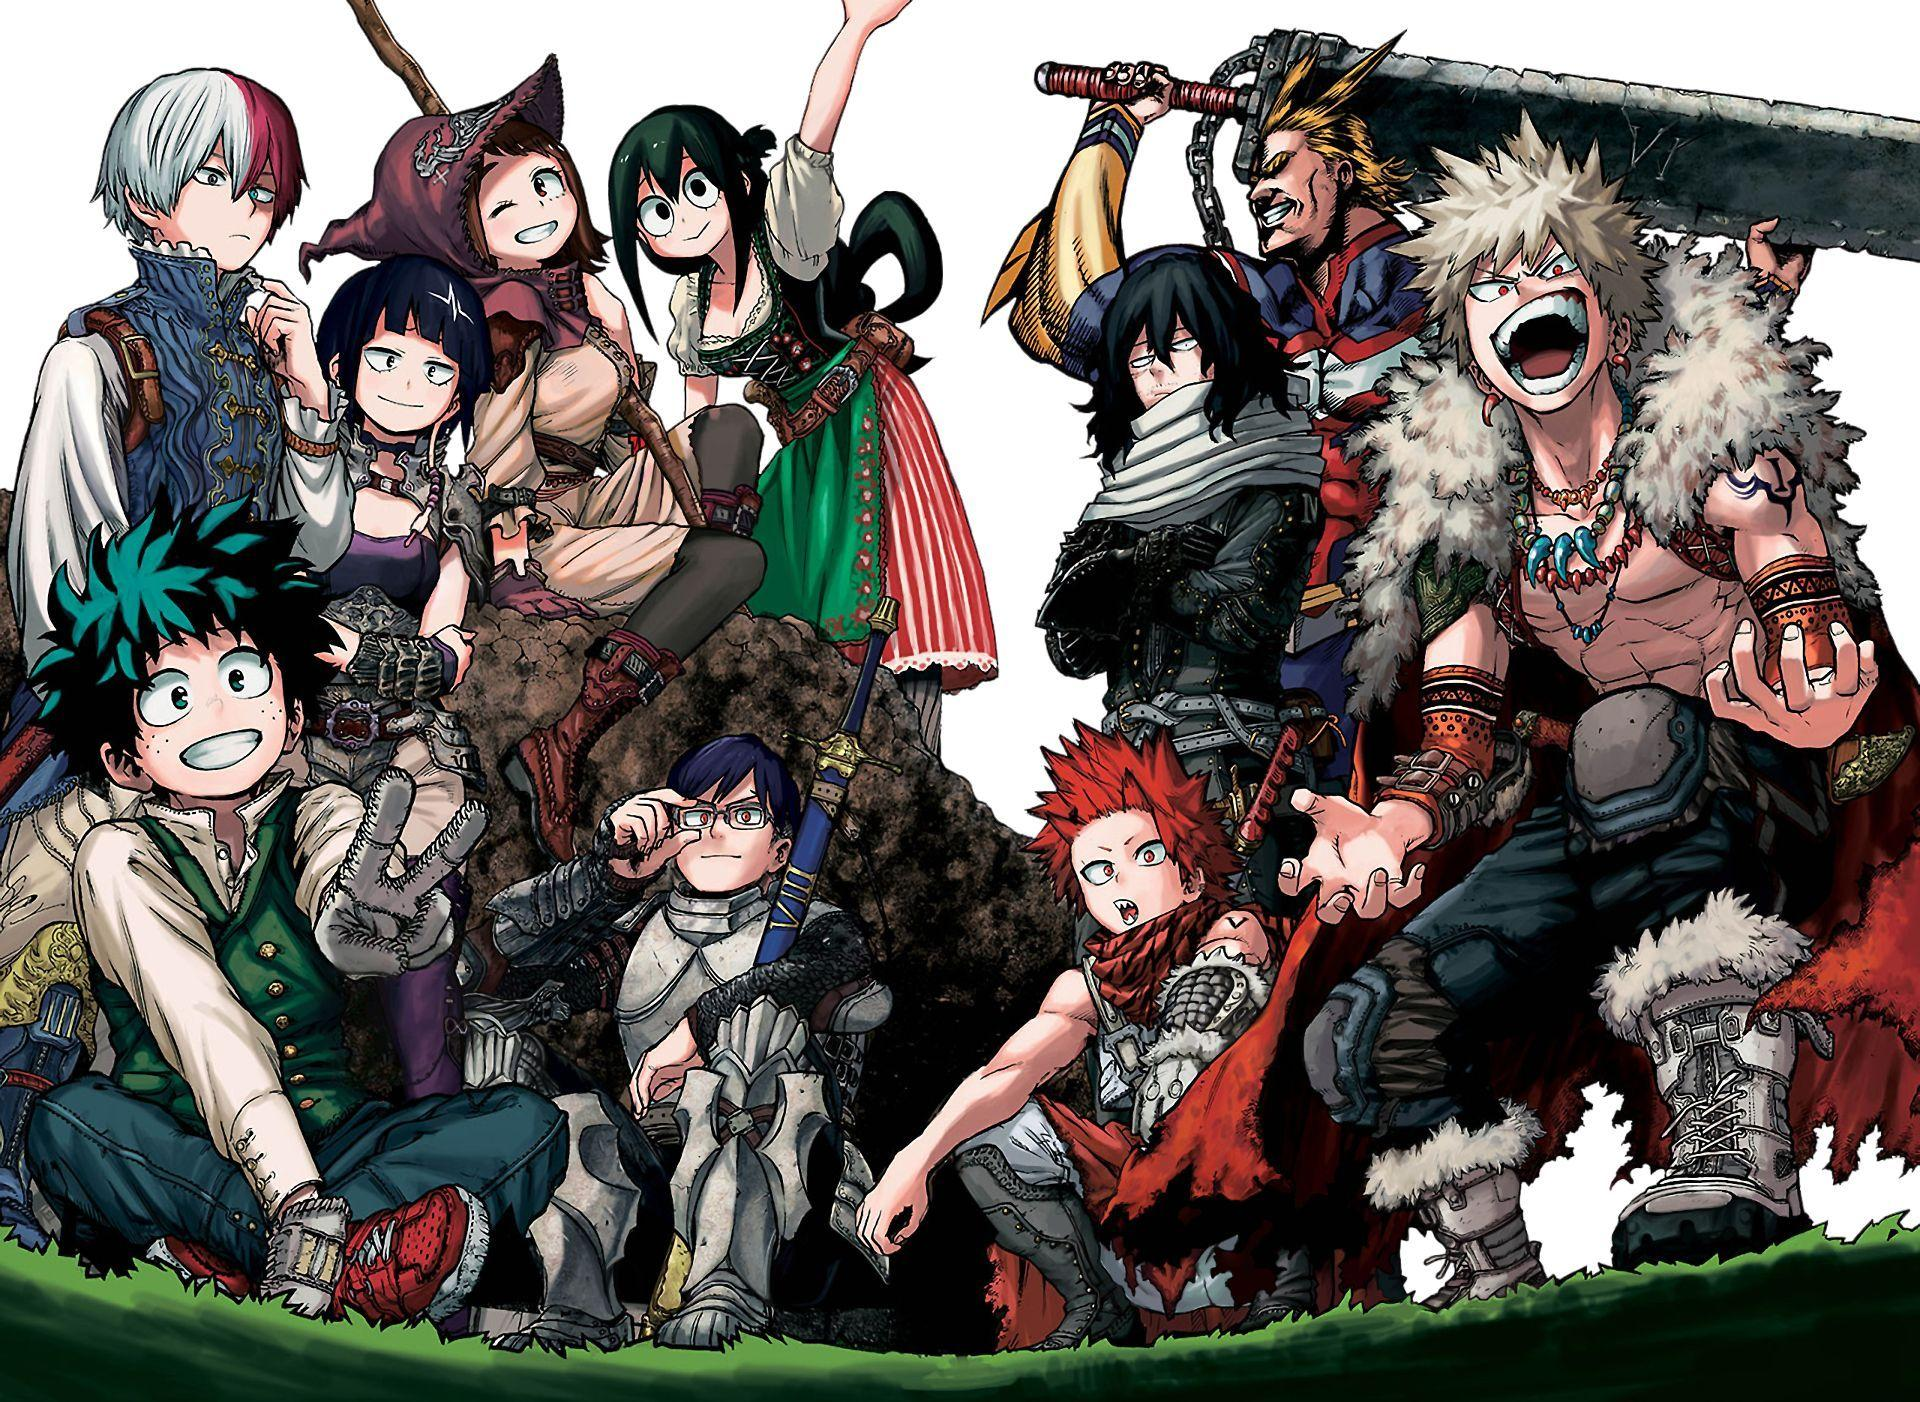 Tons of awesome my hero academia chibi wallpapers to download for free. My Hero Academia And Naruto Wallpapers - Wallpaper Cave